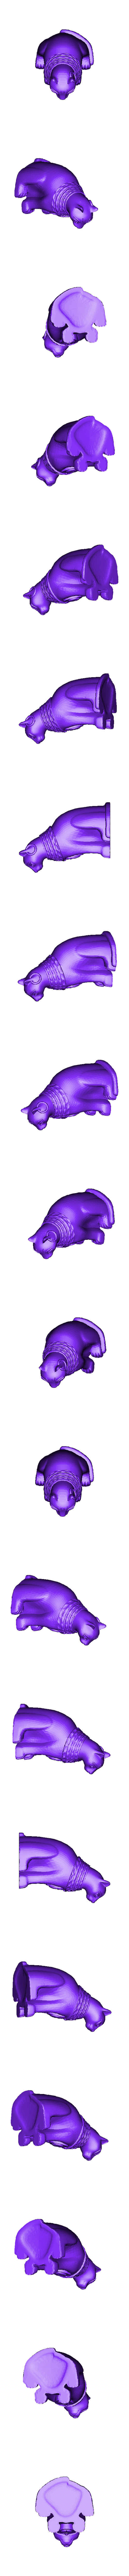 Egyptian_Cat_Familiar.stl Download free STL file Scarab Pattern Terminator Builder • 3D print template, Mazer